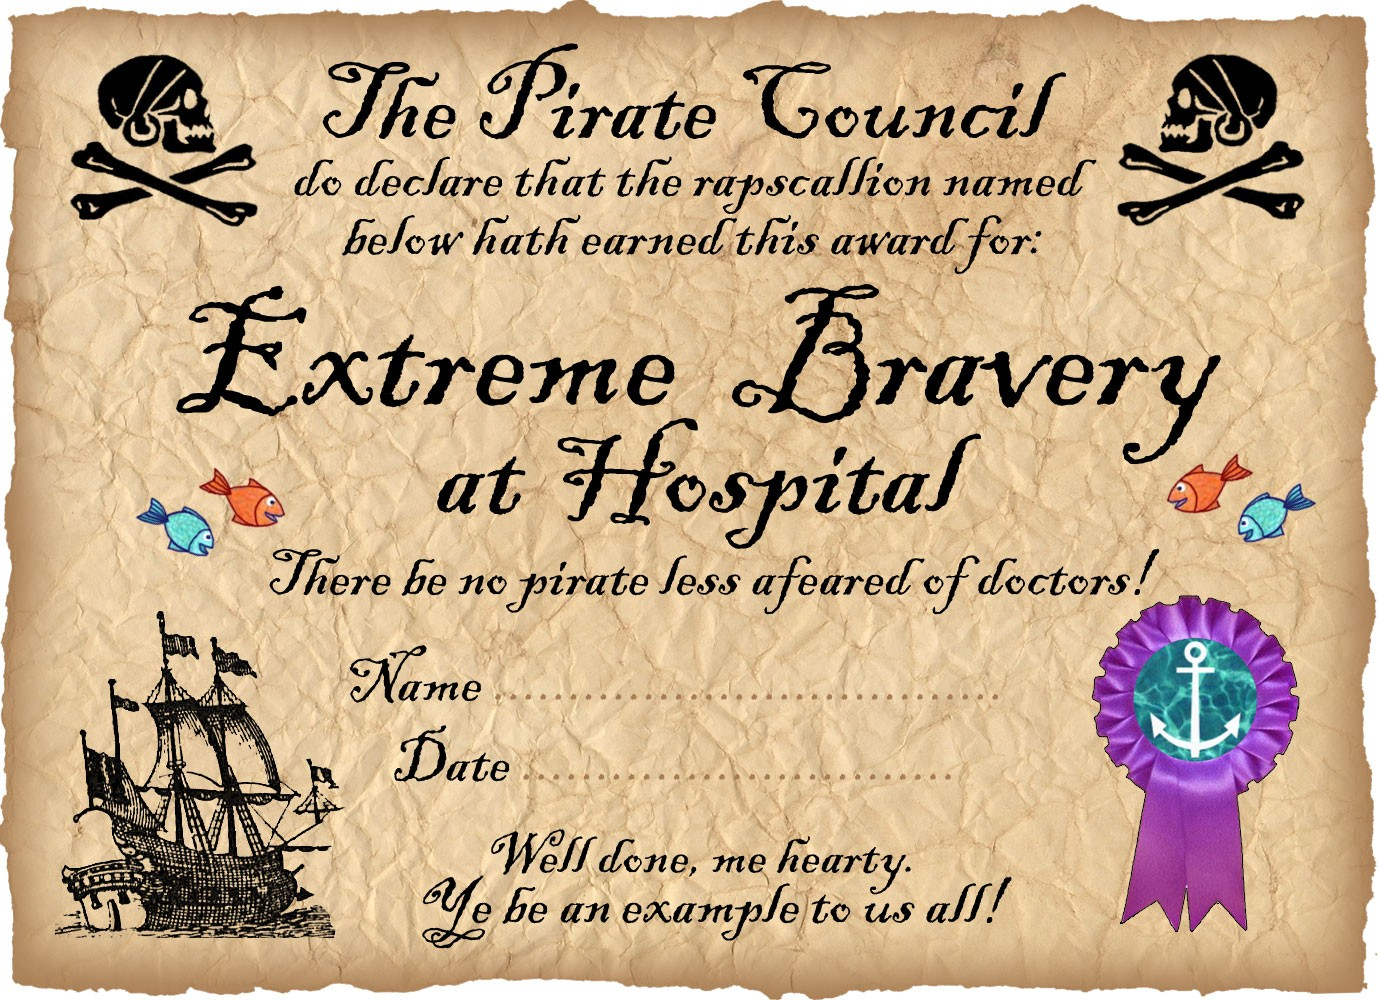 Pirate certificate award for bravery in hospital for Bravery certificate template